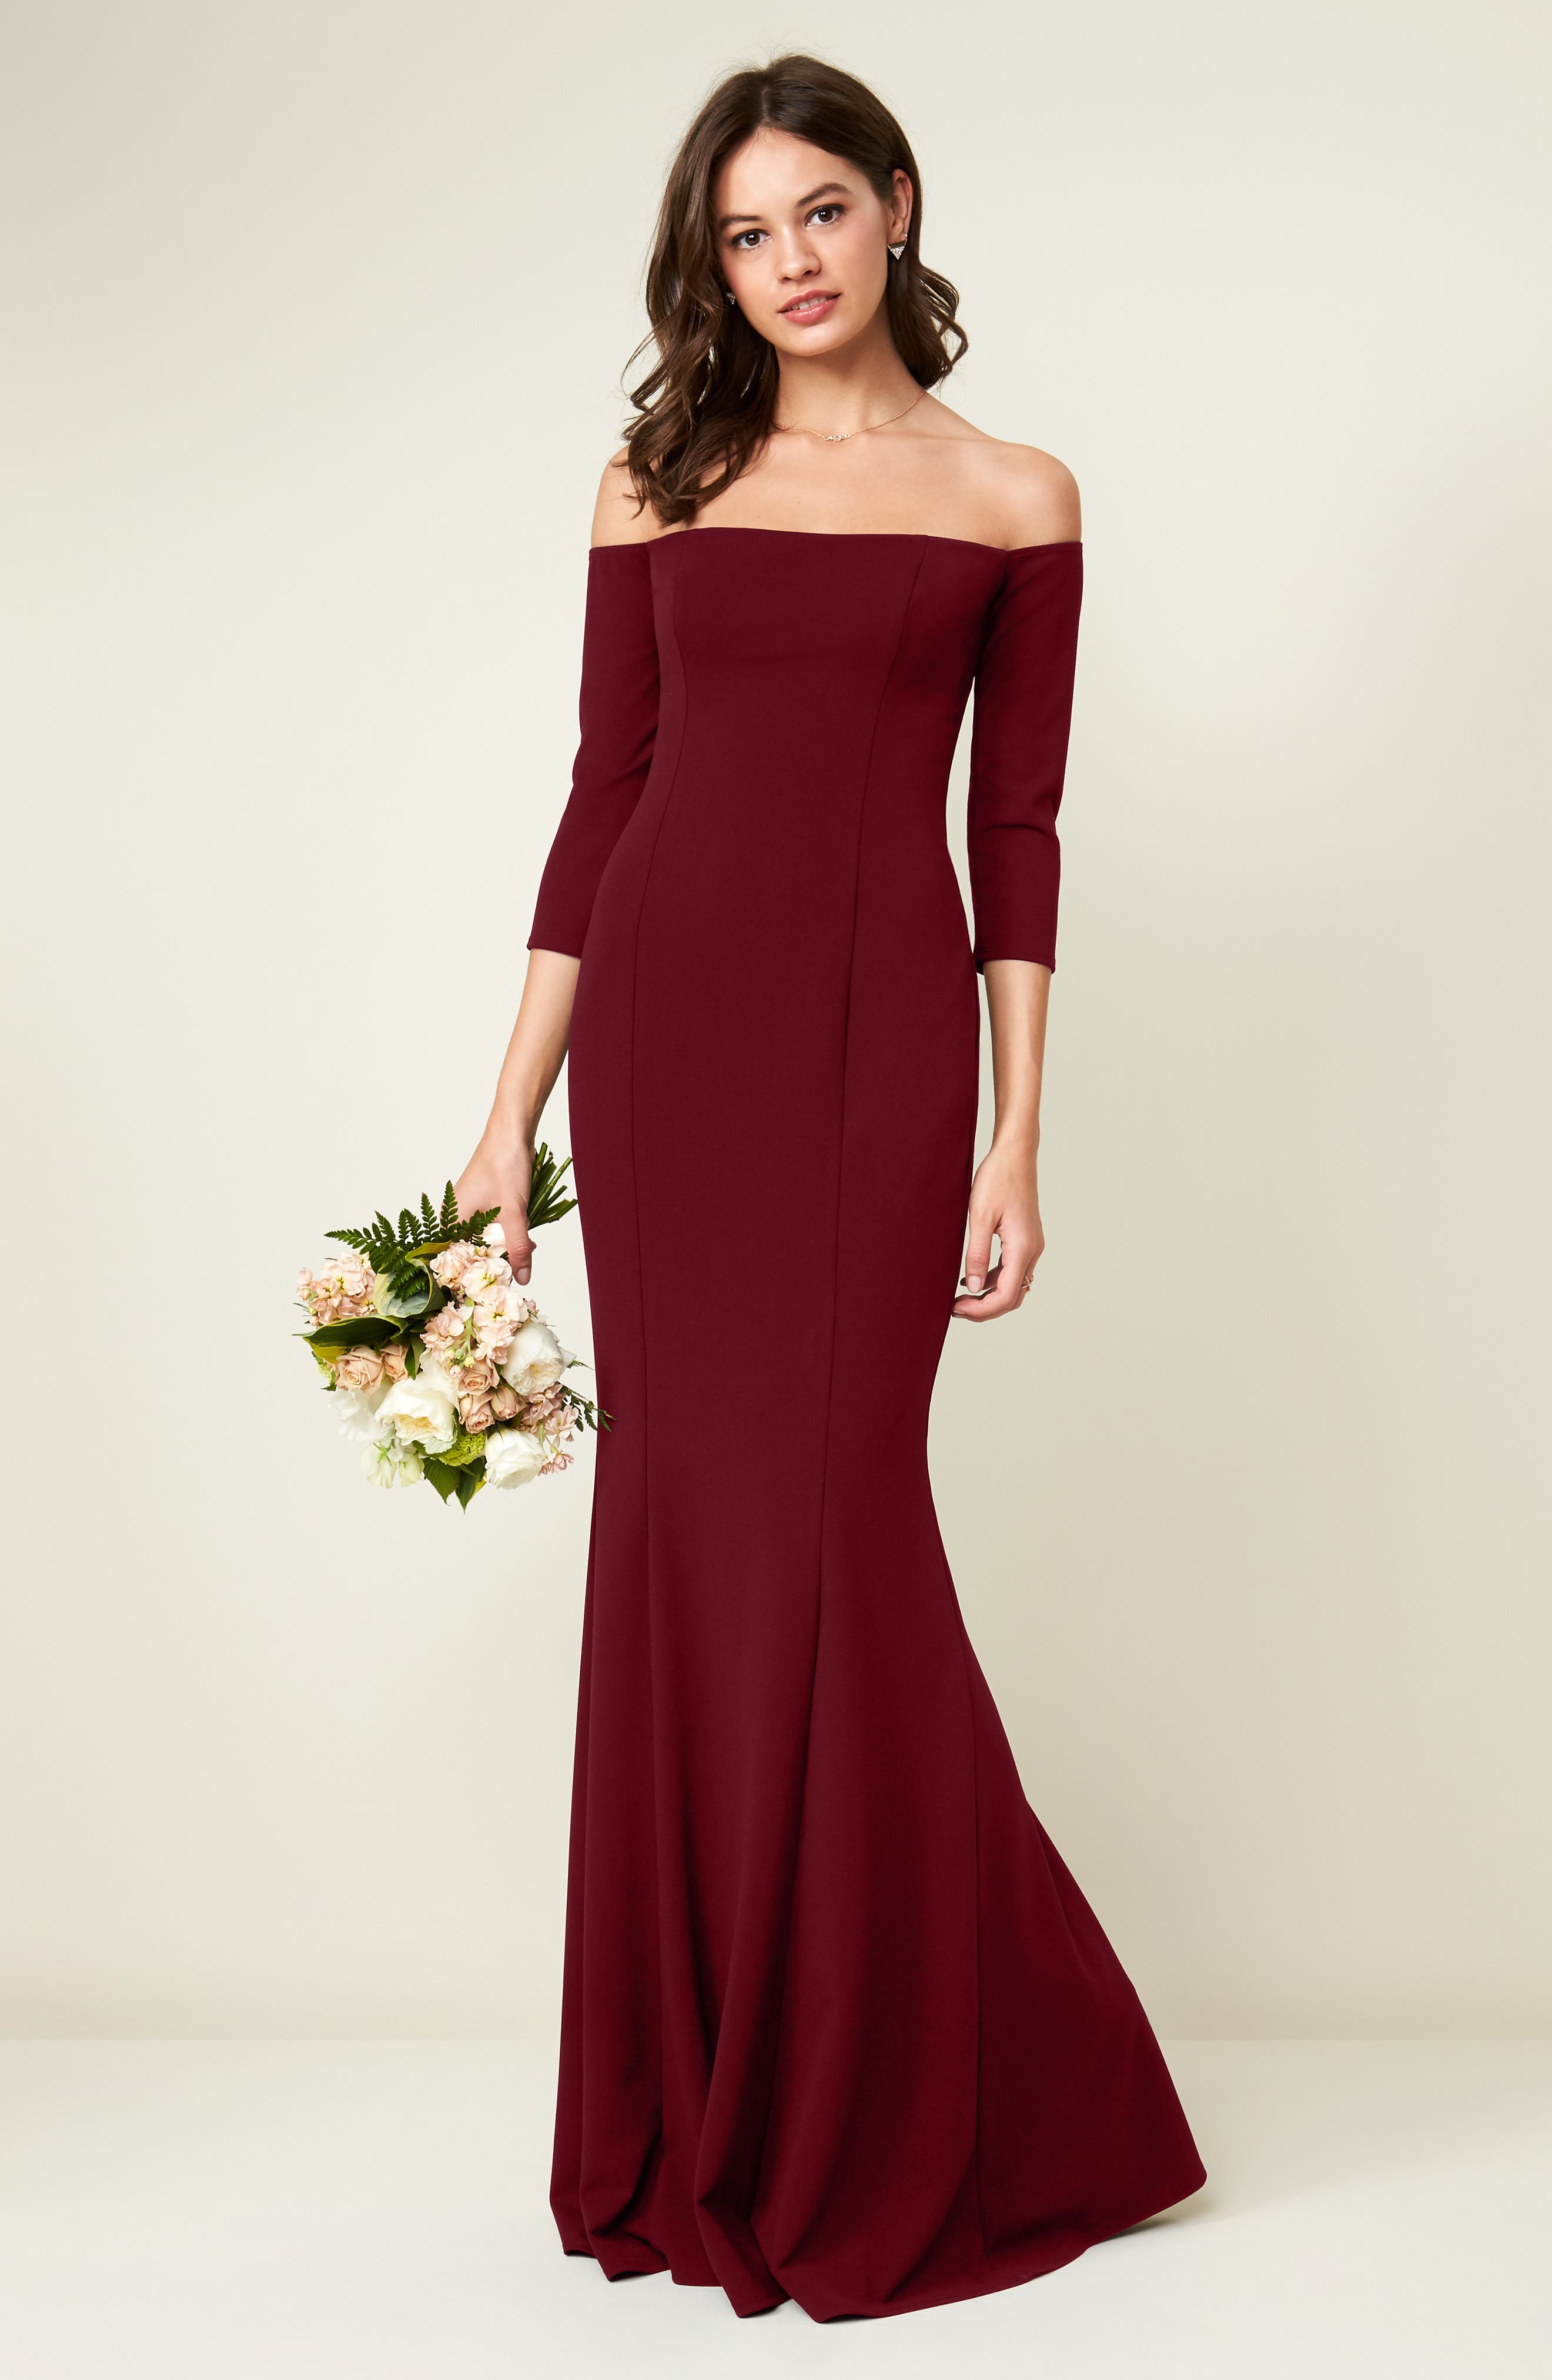 Brentwood Three-Quarter Sleeve Off the Shoulder Gown,                             Alternate thumbnail 2, color,                             Bordeaux